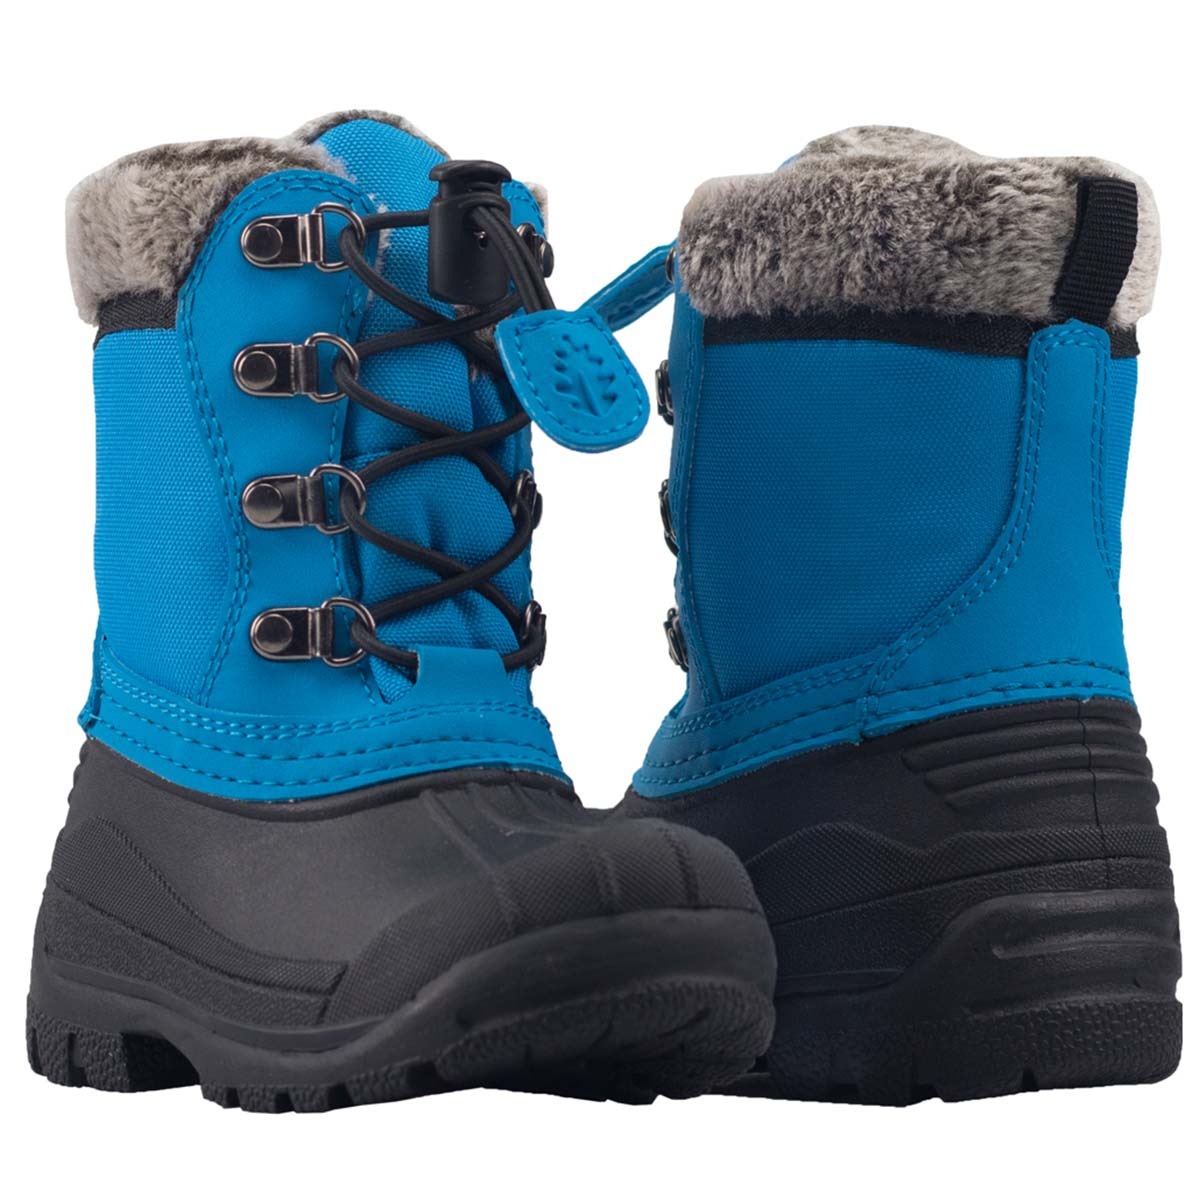 Oakiwear Winter Snow Boots For Kids Insulated Waterproof Rubber Nonslip Boy Or Girl Children Shoes